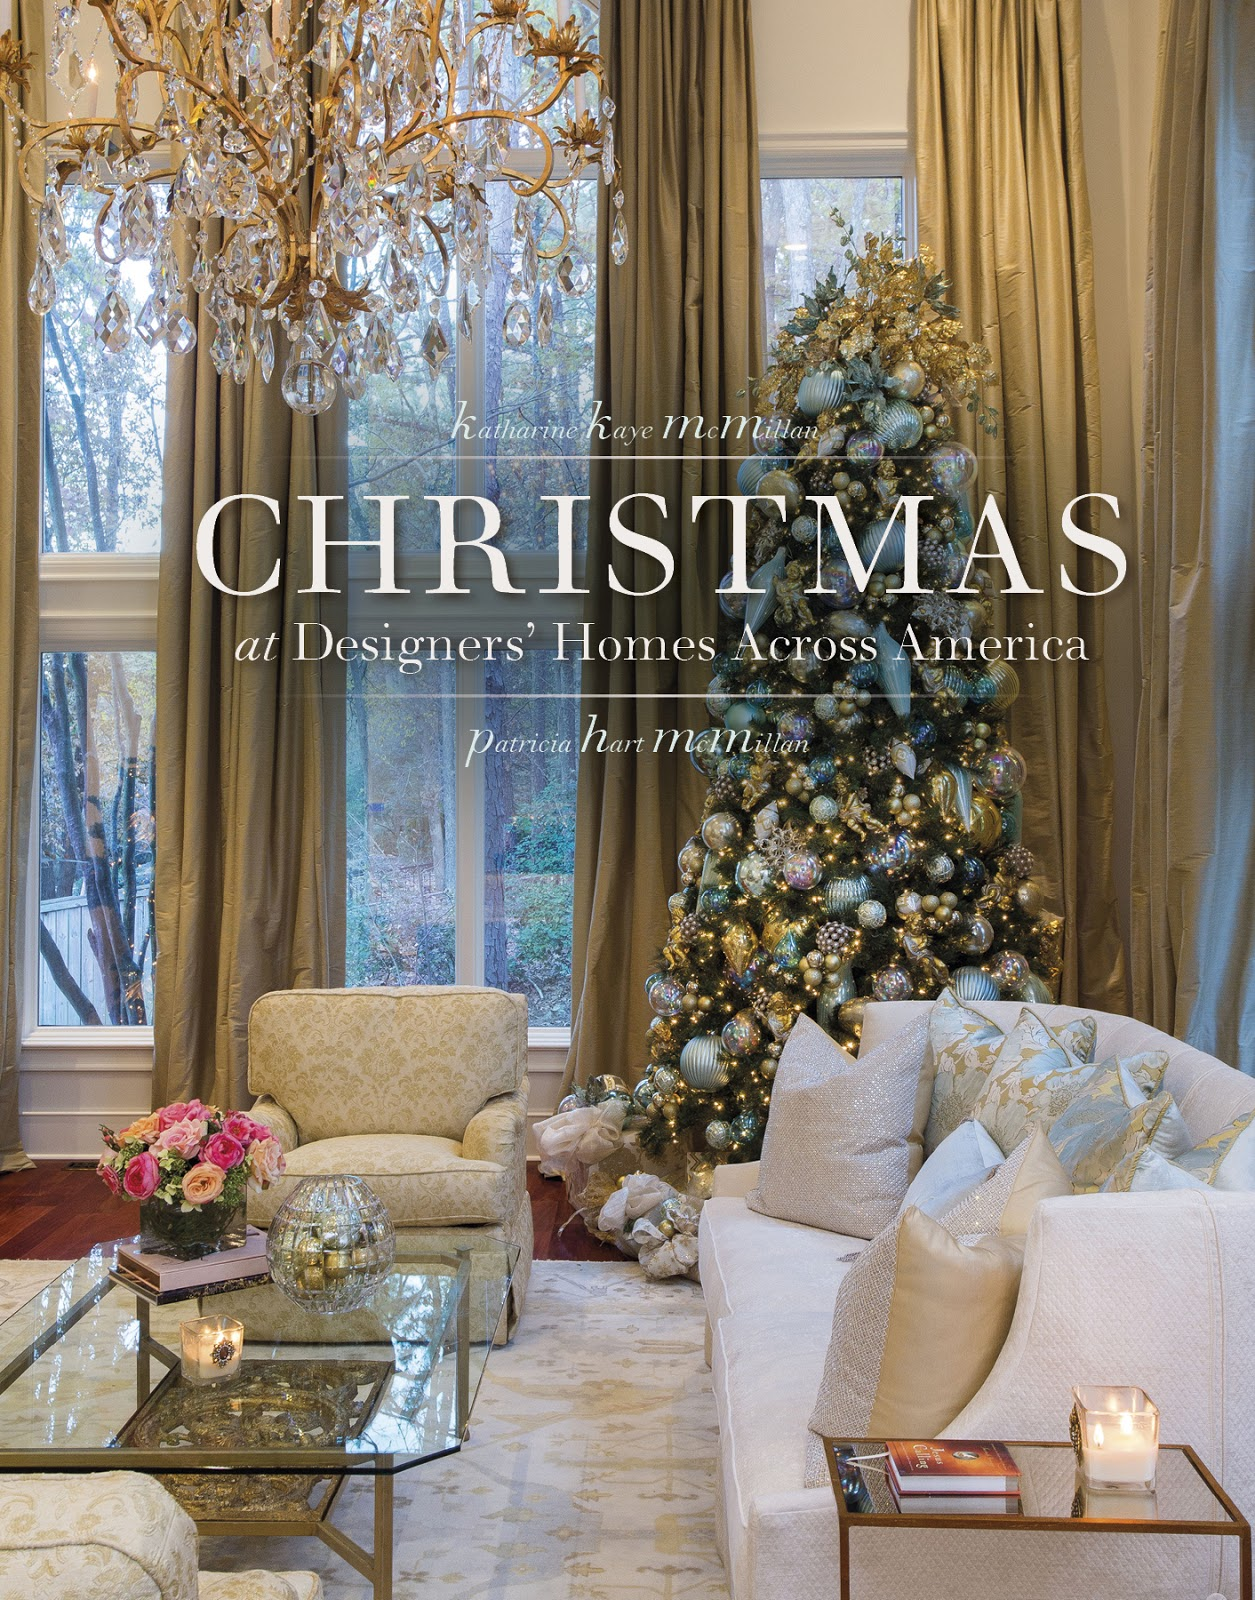 designers homes. It Features Almost 400 Color Images Of Beautiful Holiday Inspirations  Created By Leading Designers In Their Own Homes A Few My Favorites Are Below Christmas At Designers Homes Across America The Glam Pad